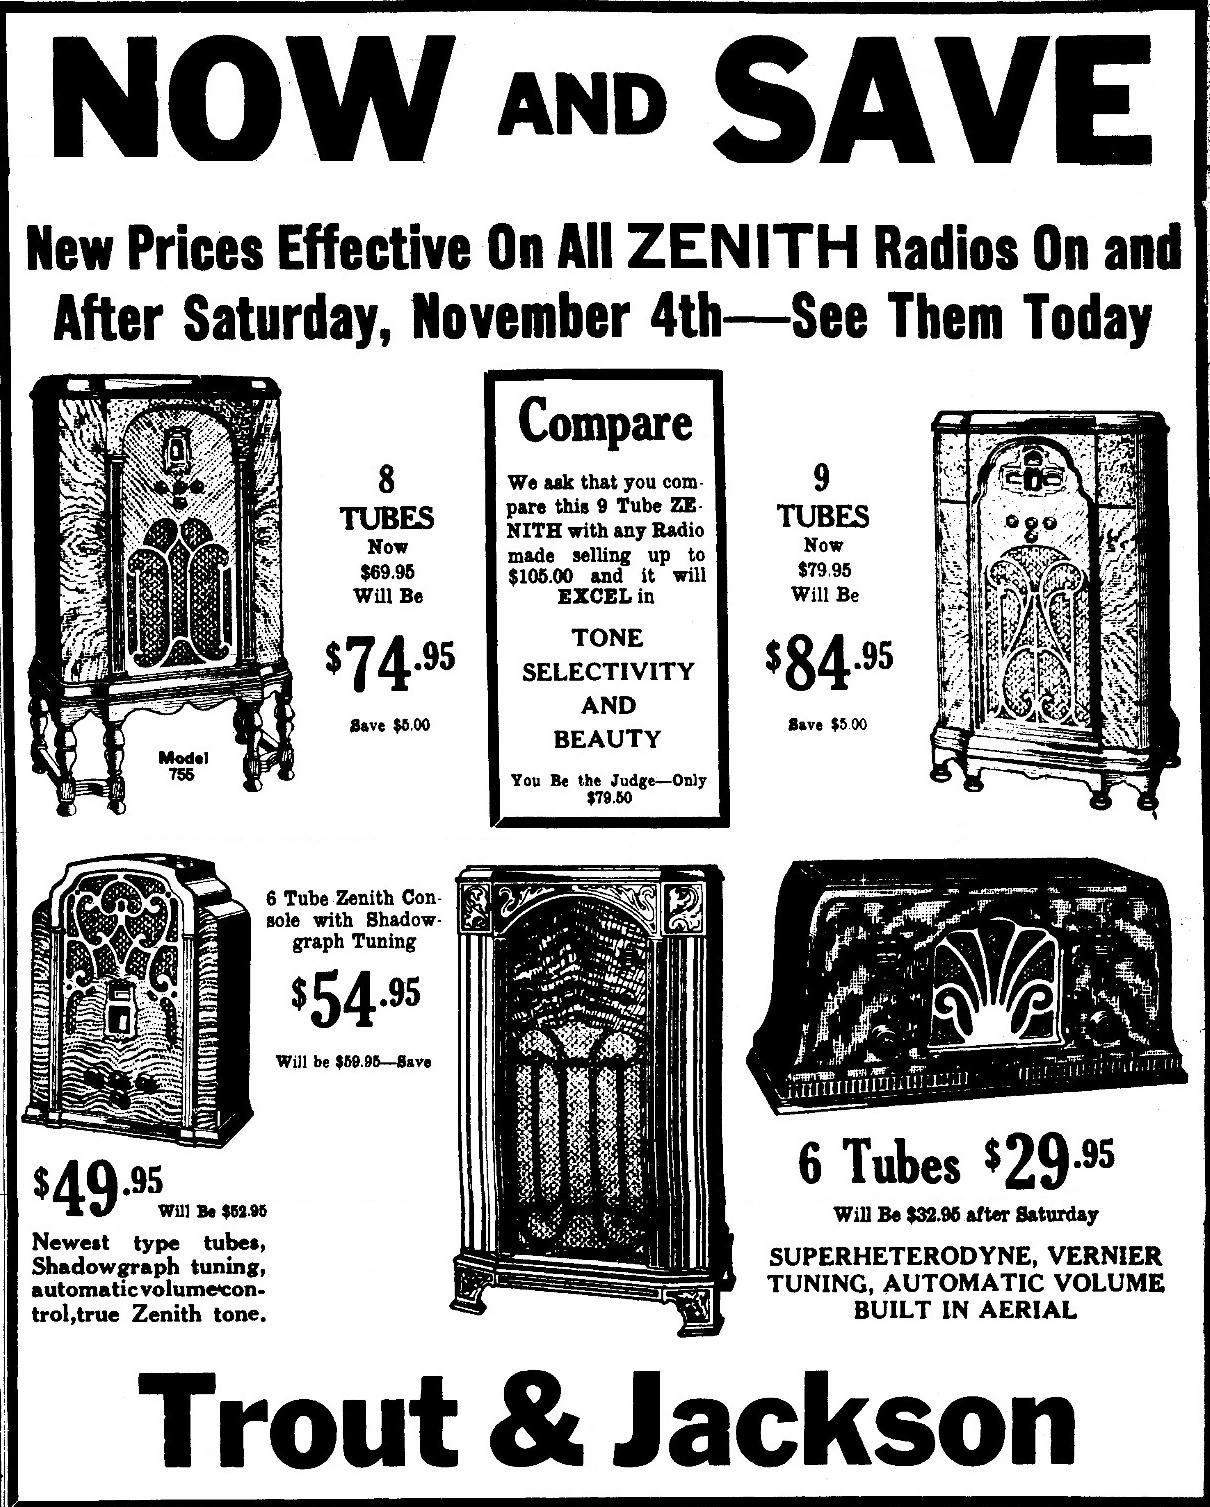 Zenith Model 715 Tombstone Tube Radio